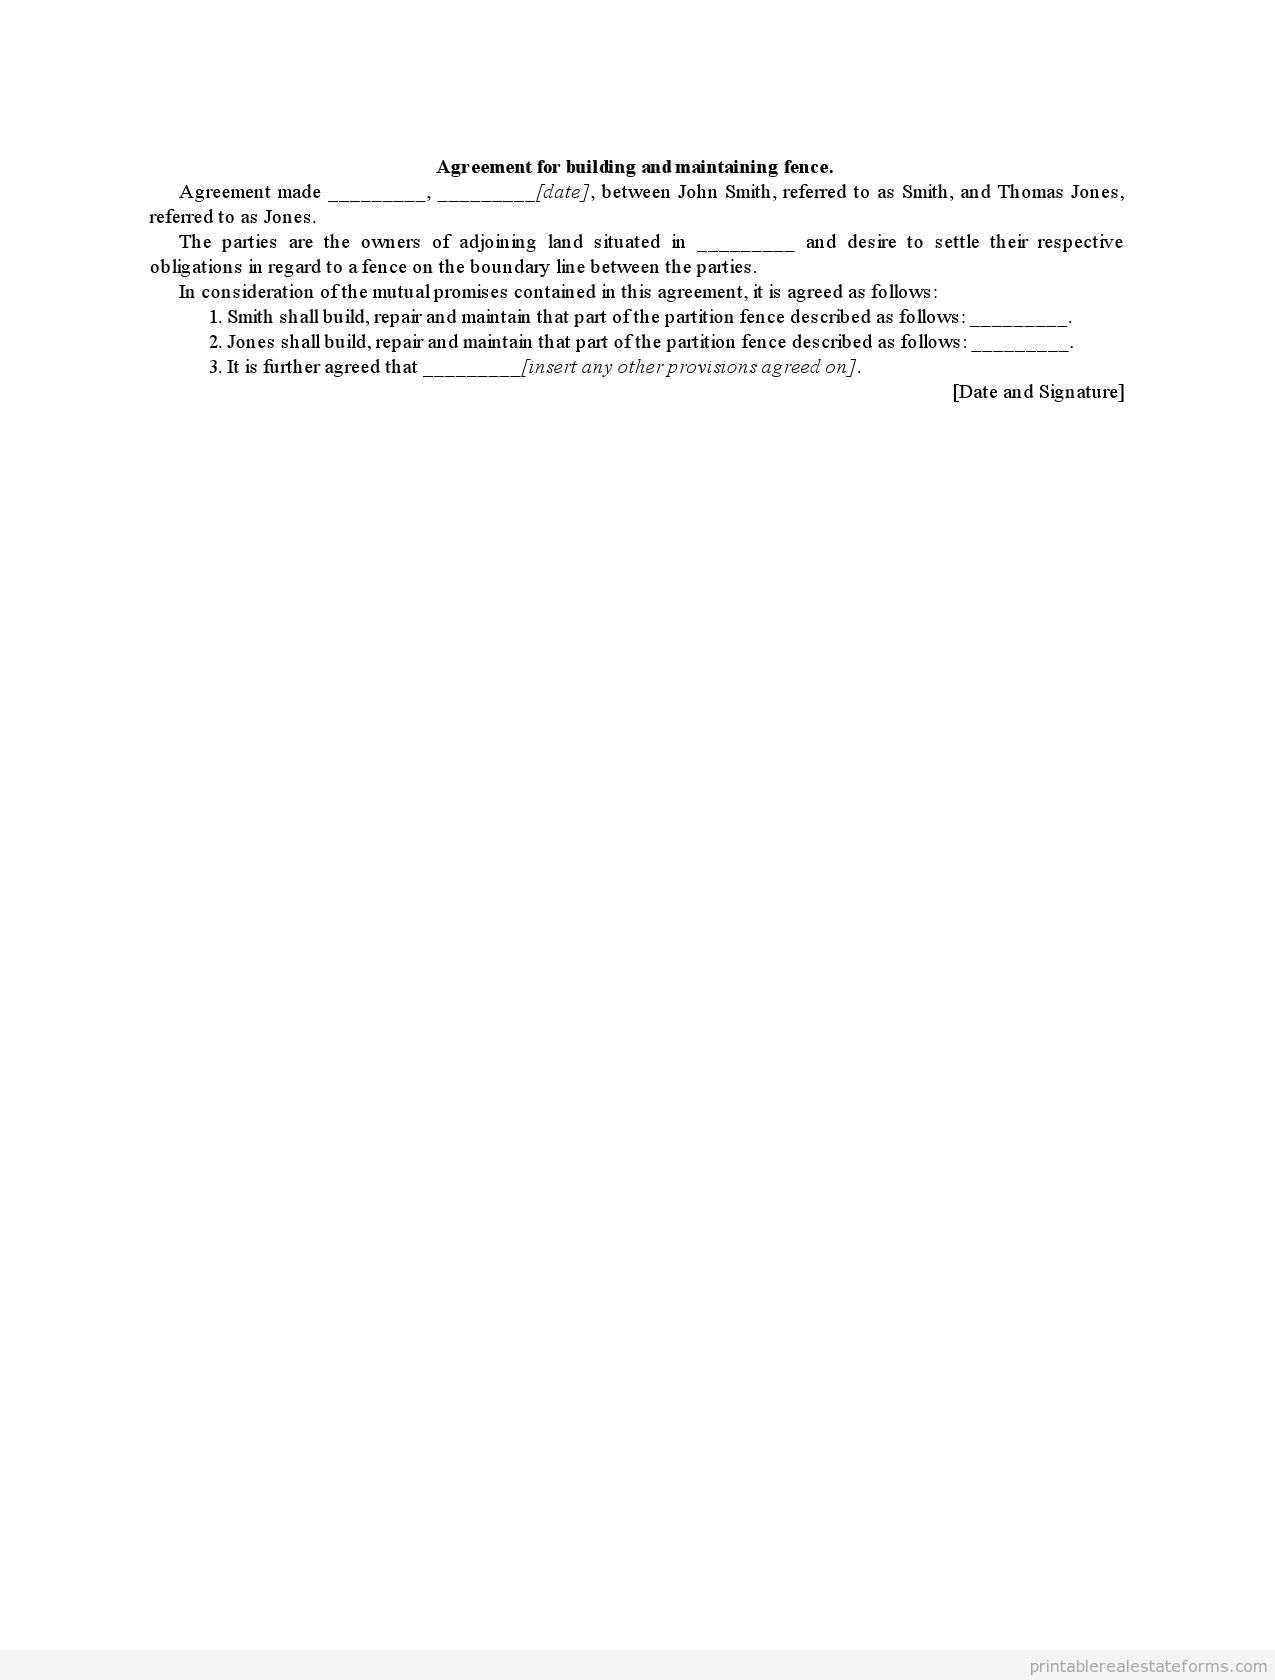 Sample Printable agreement for building and maintaining fence Form ...